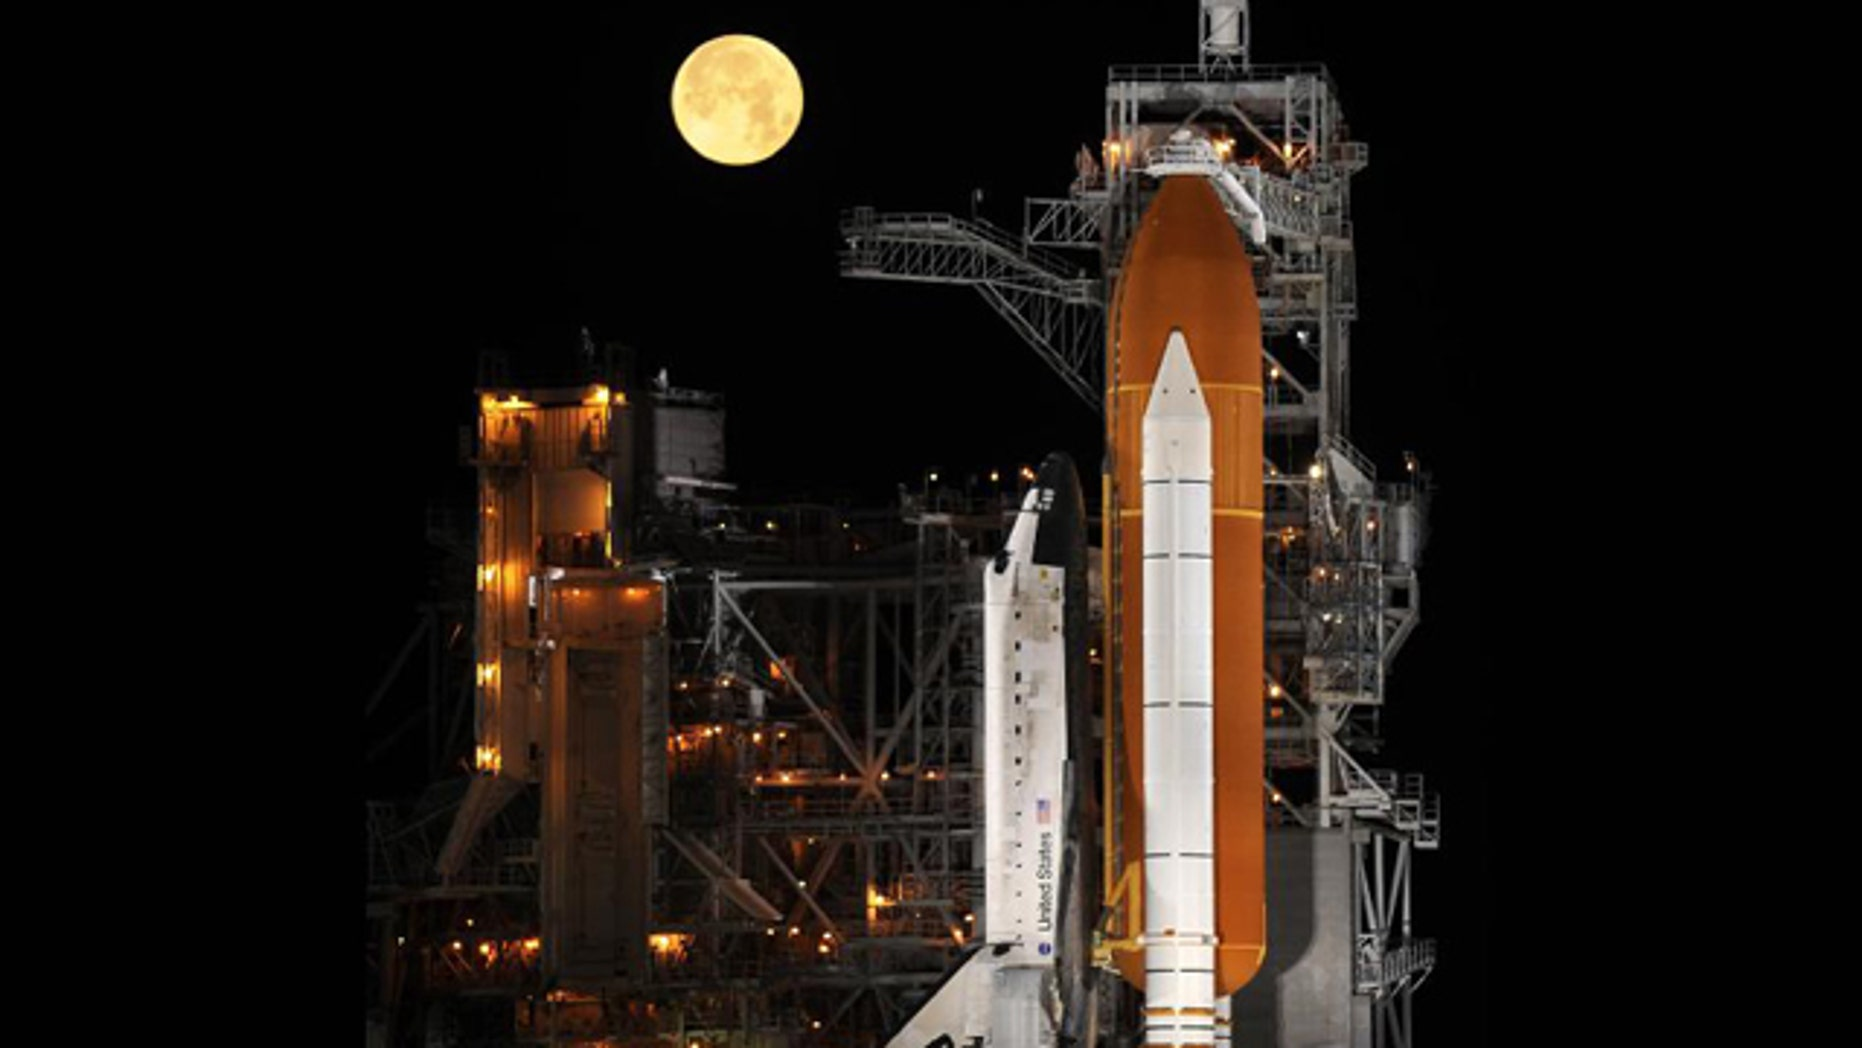 The space shuttle Discovery stands ready for liftoff at Launch Pad 39A at NASA's Kennedy Space Center in Cape Canaveral, Fla. Behind the shuttle, a nearly full moon sets. Discovery is poised to launch on the STS-119 mission in March 2009.